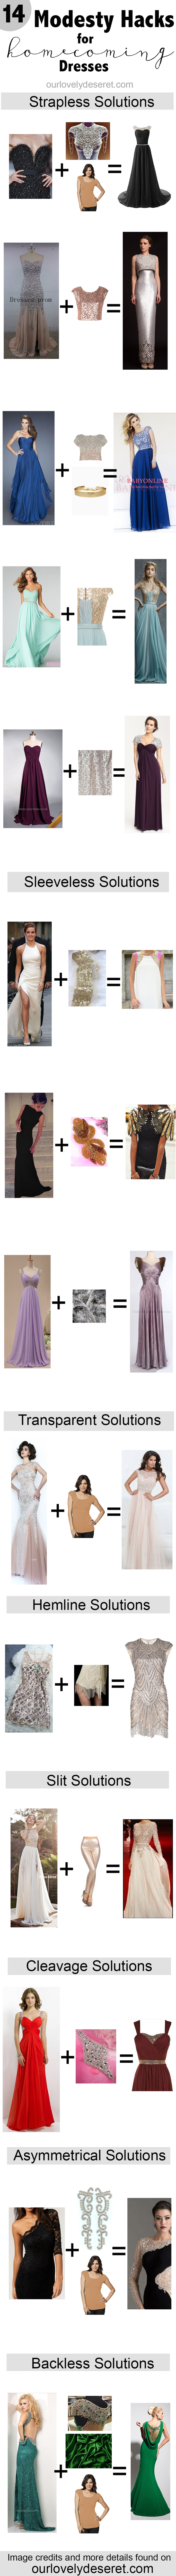 Modest Formal Dress Guide: How to find Modest Formal Dresses & How to Alter An Immodest Dress